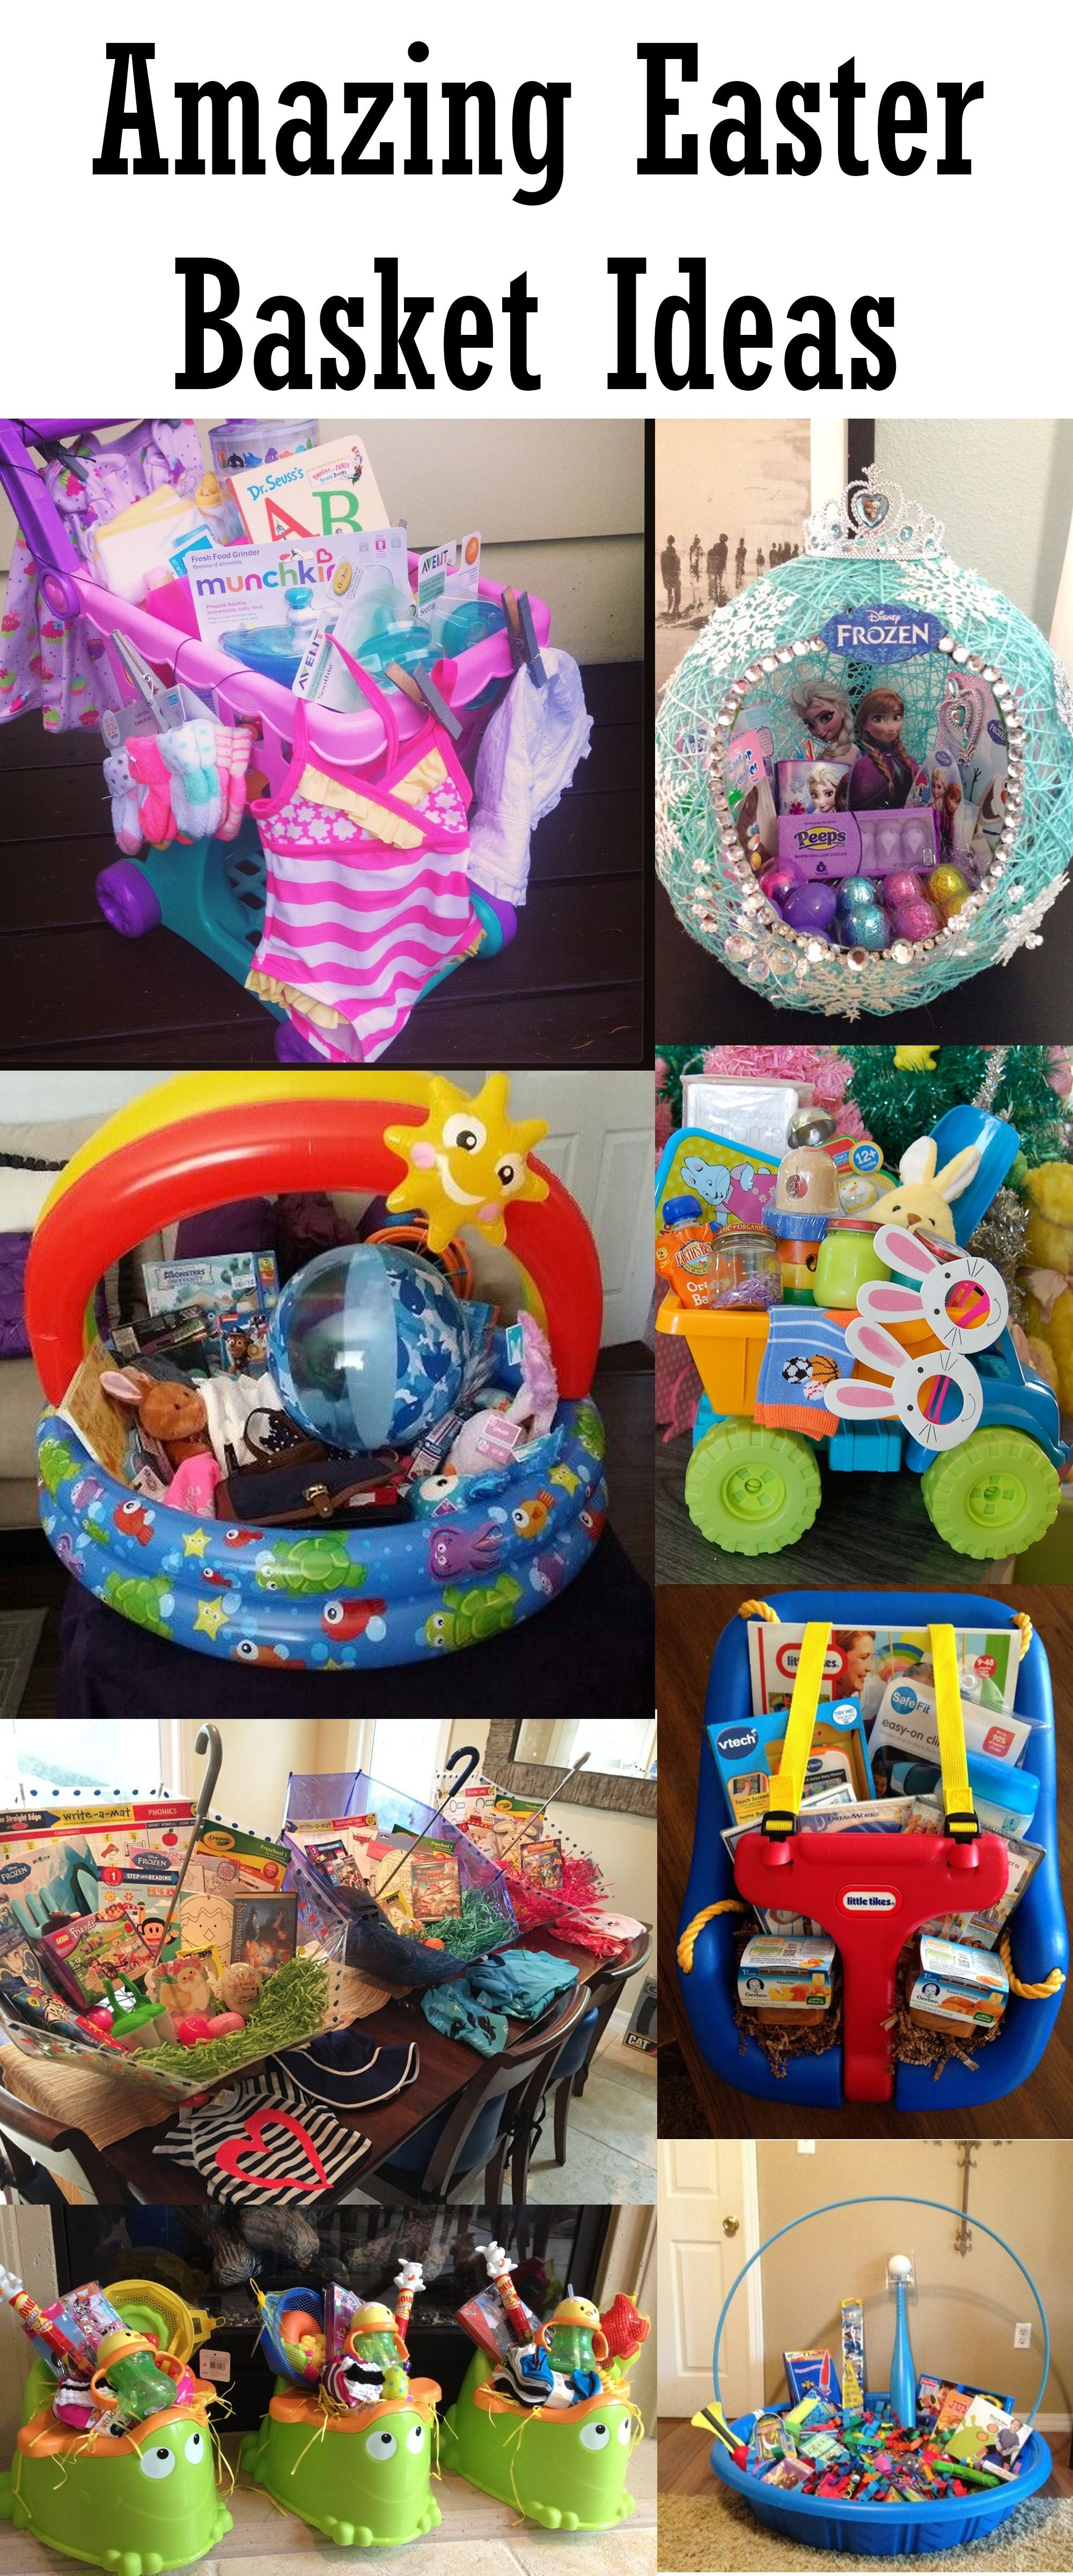 10 Wonderful Easter Basket Ideas For Girls amazing easter basket ideas basket ideas easter baskets and easter 3 2021